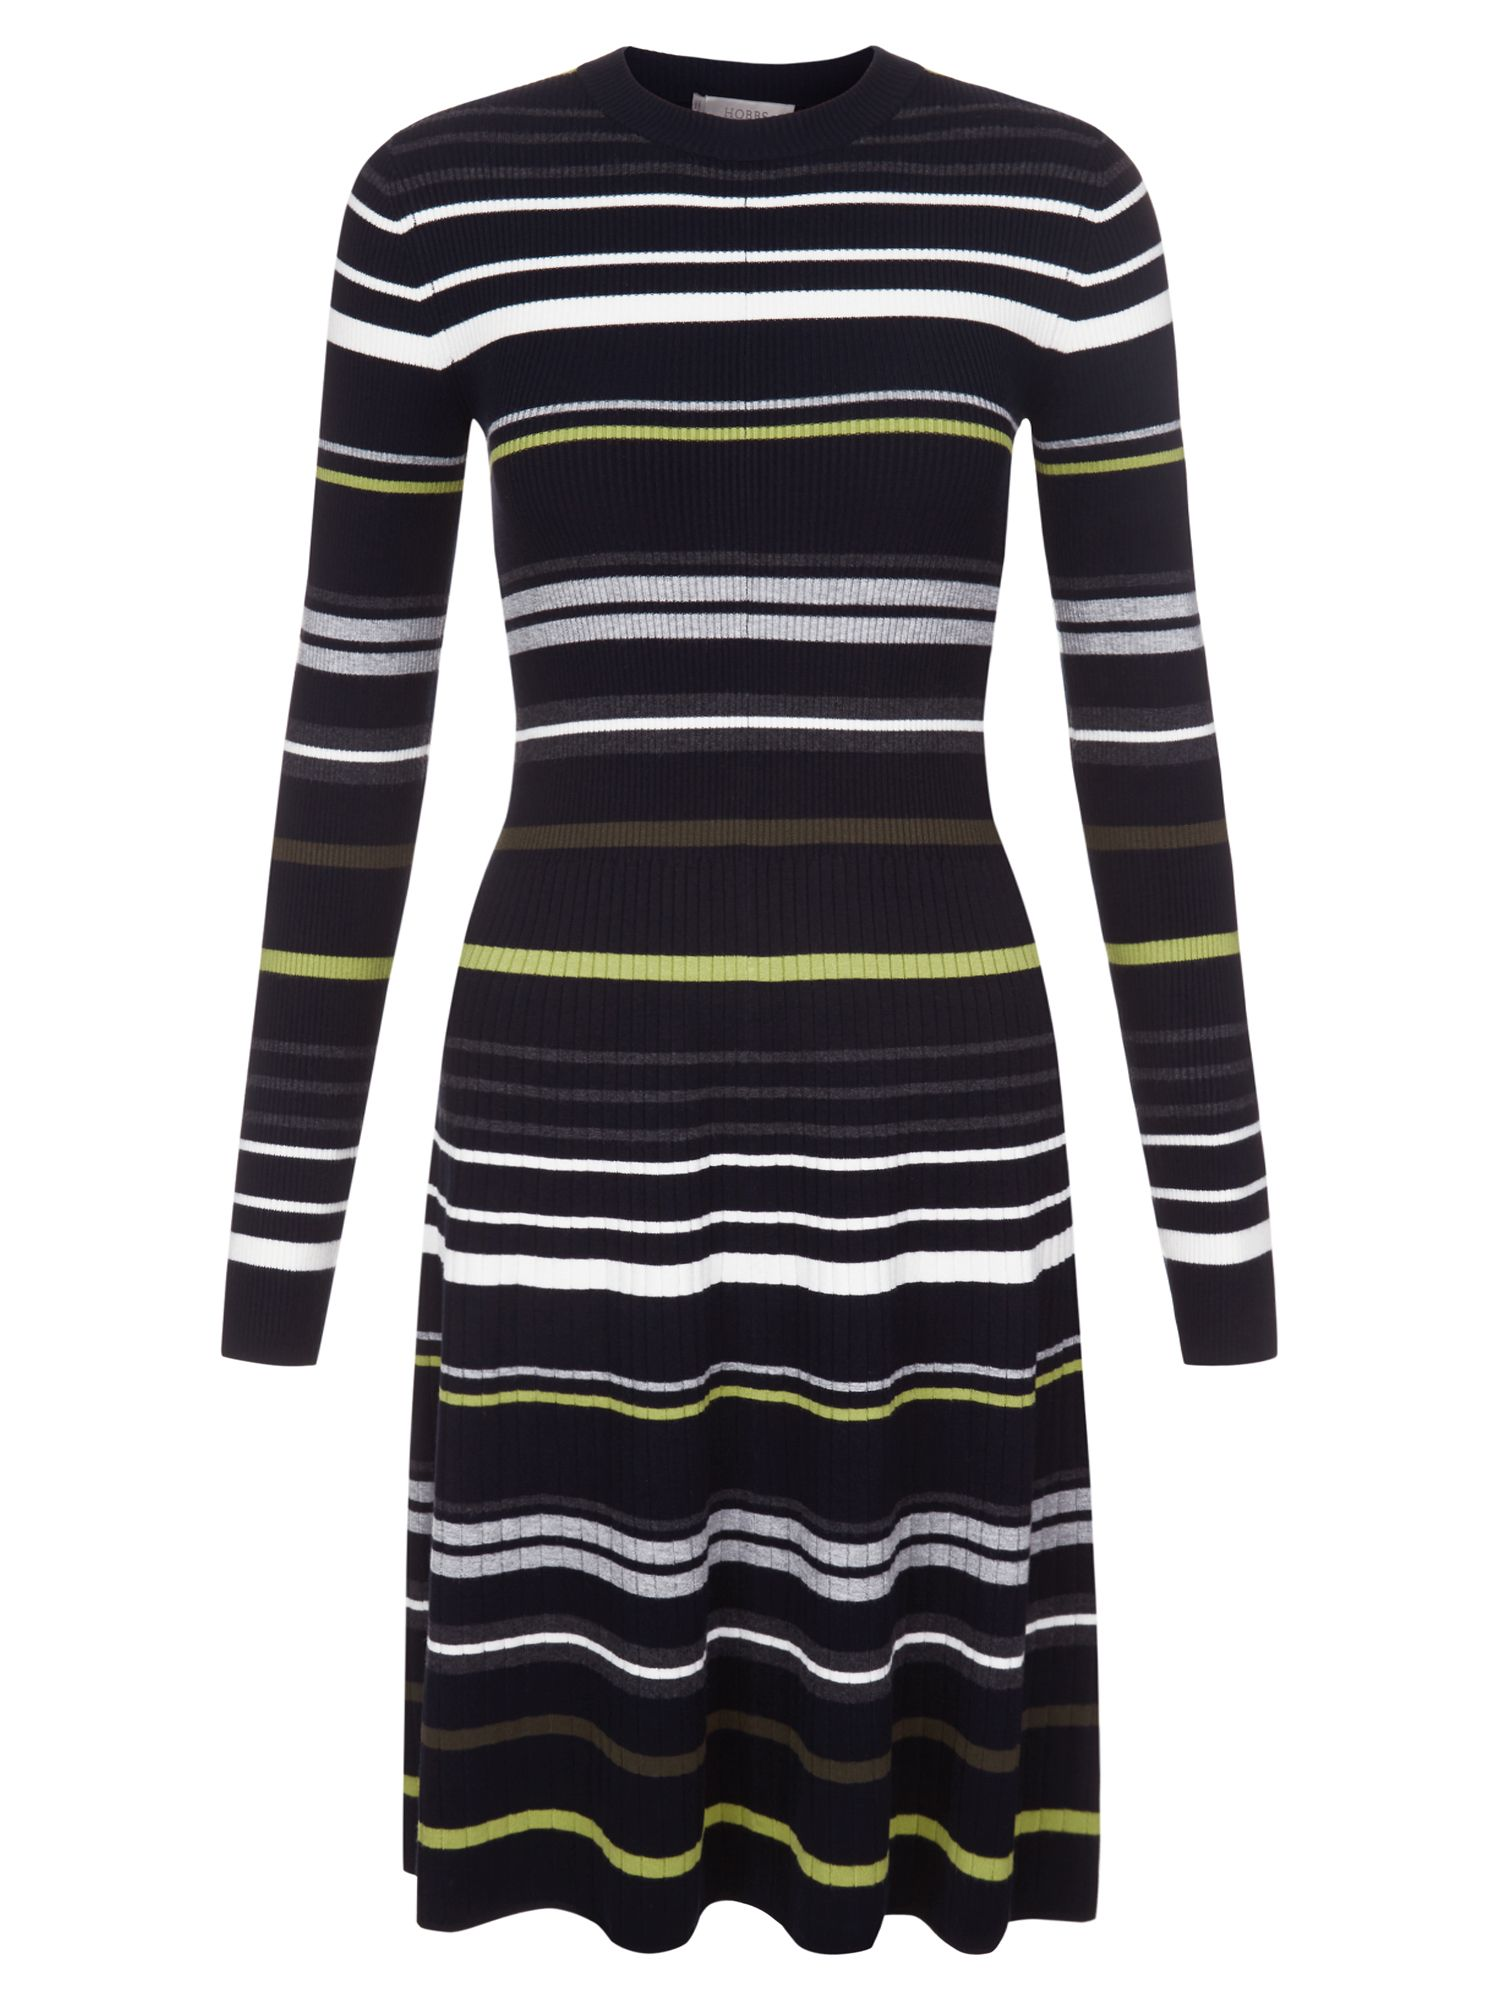 Hobbs Jayne Stripe Dress, Multi-Coloured